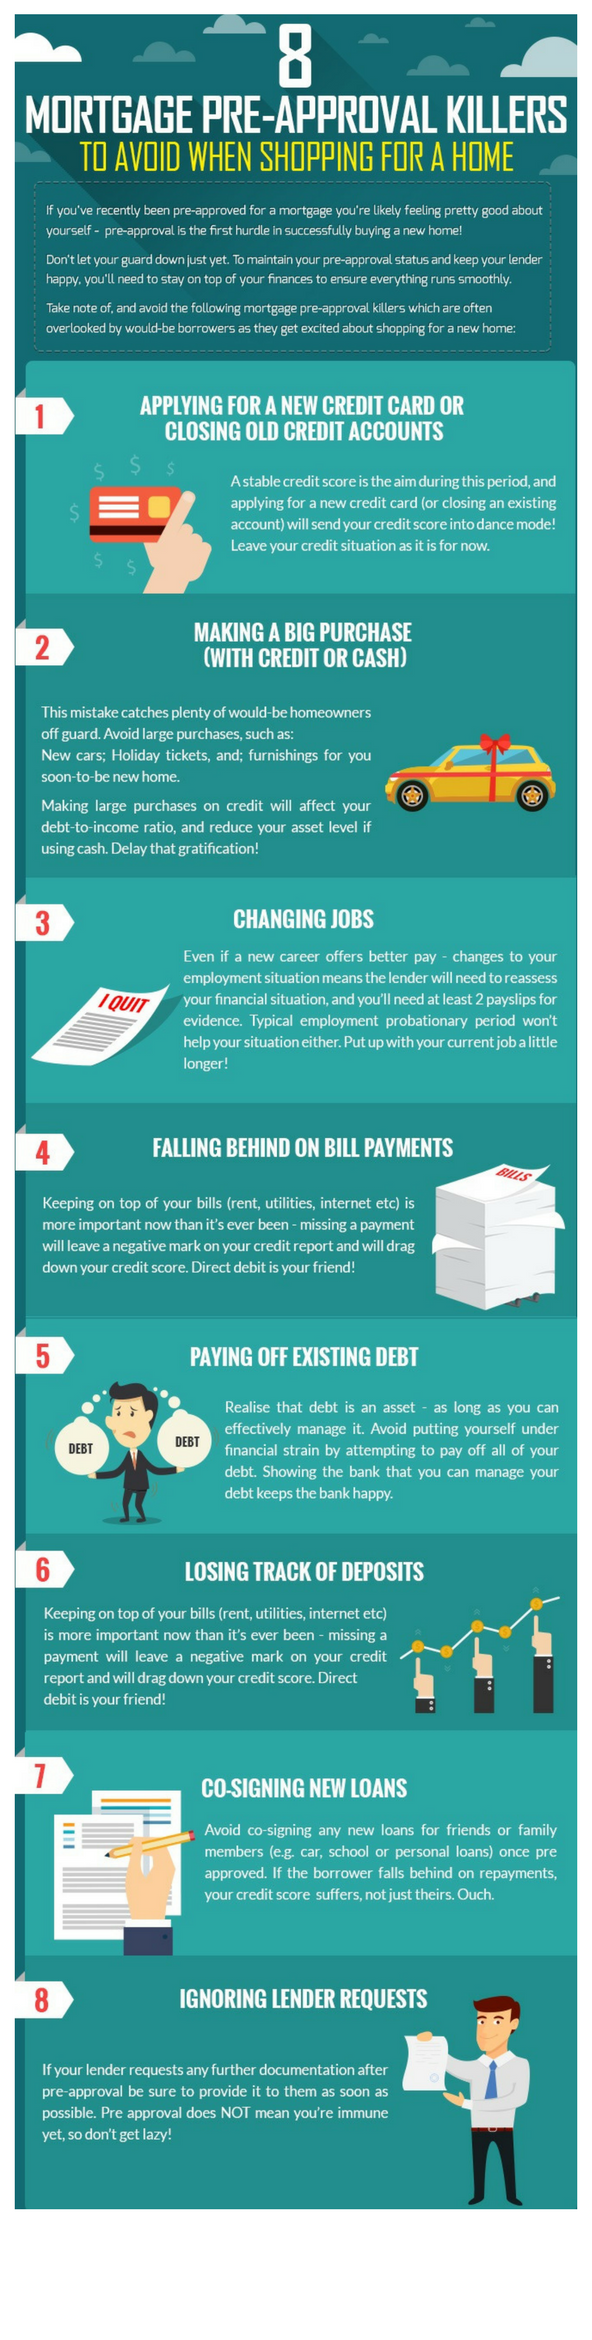 8 mortgage pre-approval killers infographic